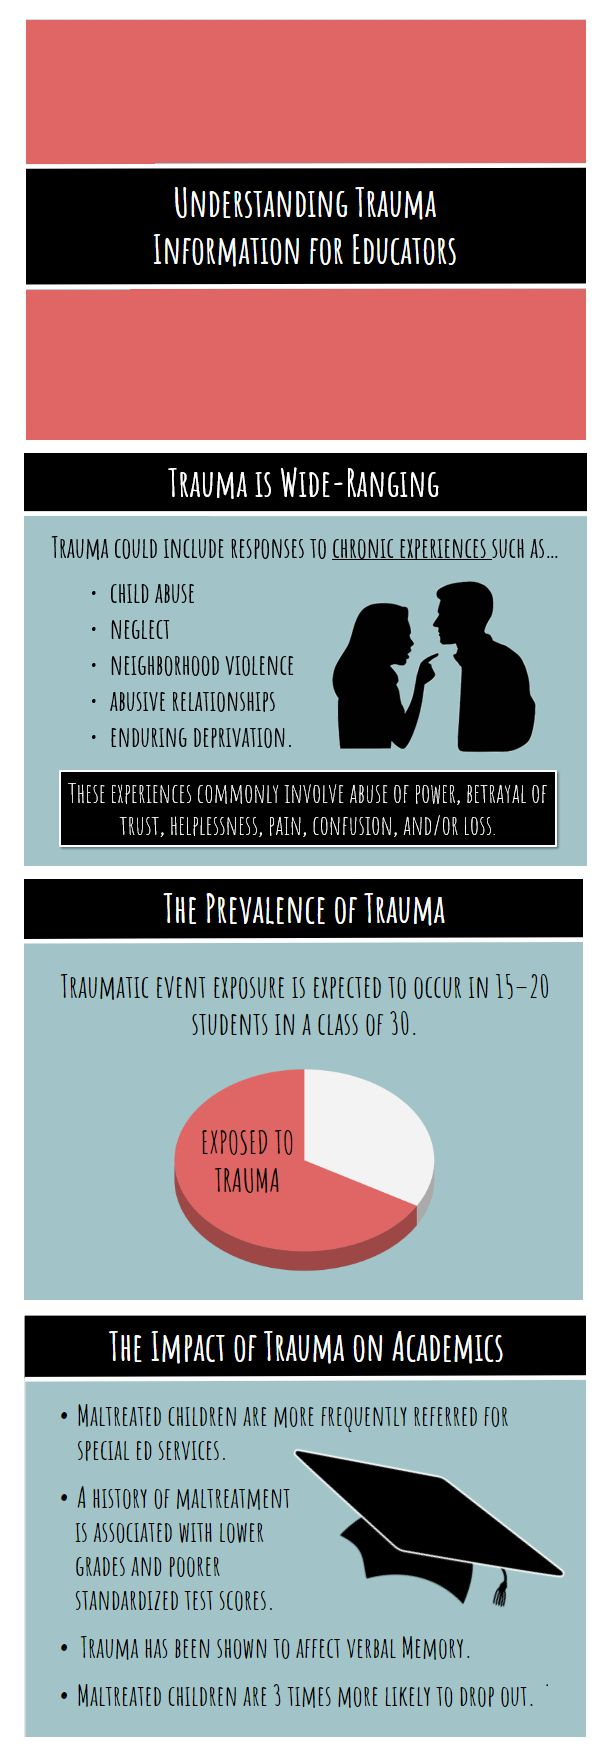 This 12 slide PowerPoint aims to inform educators about trauma and how it can affect academic achievement. This presentation includes the definition of trauma, the prevalence of trauma- exposed youth in the classroom as well as academic implications. ***References are included in the note's section of each slide, to provide those interested with further reading.